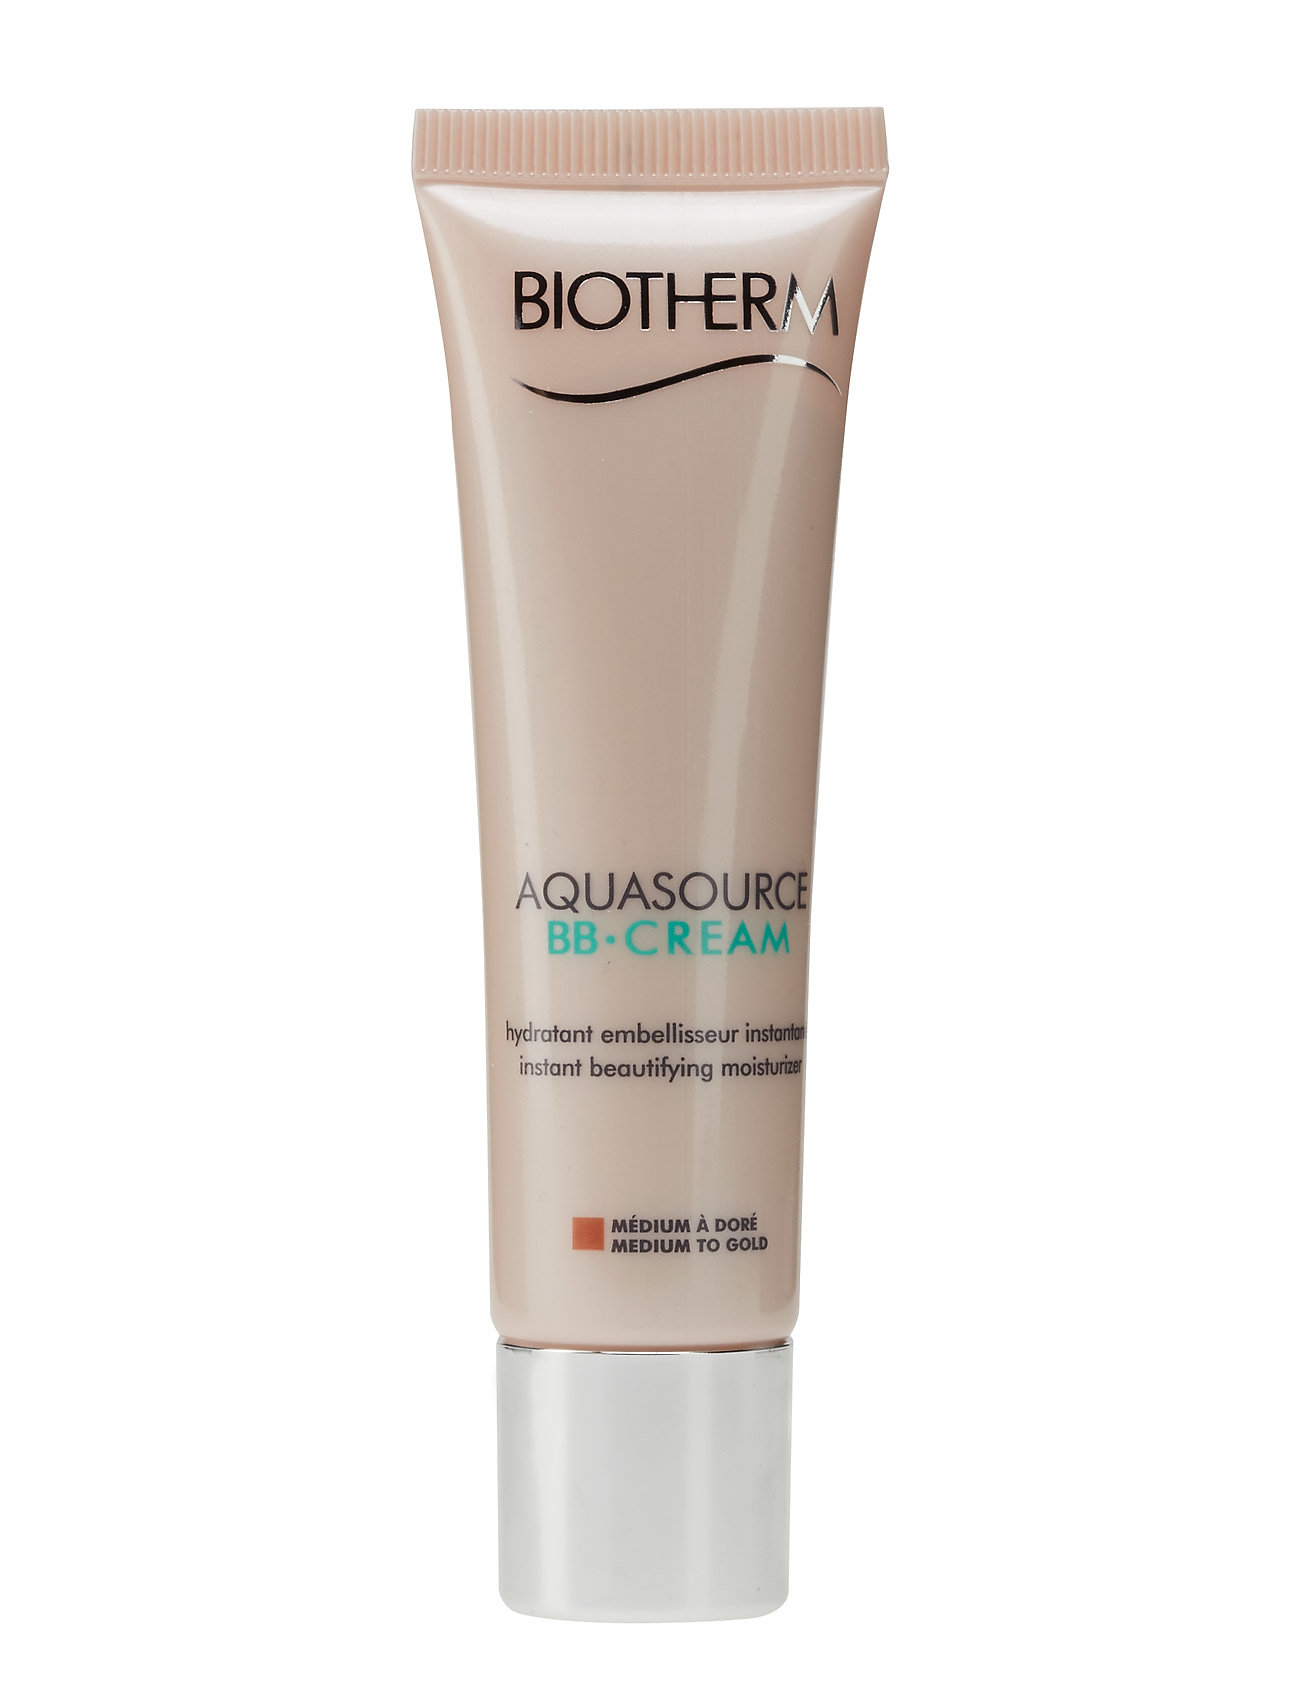 biotherm – Aquasource bb cream medium to dark 30 ml fra boozt.com dk